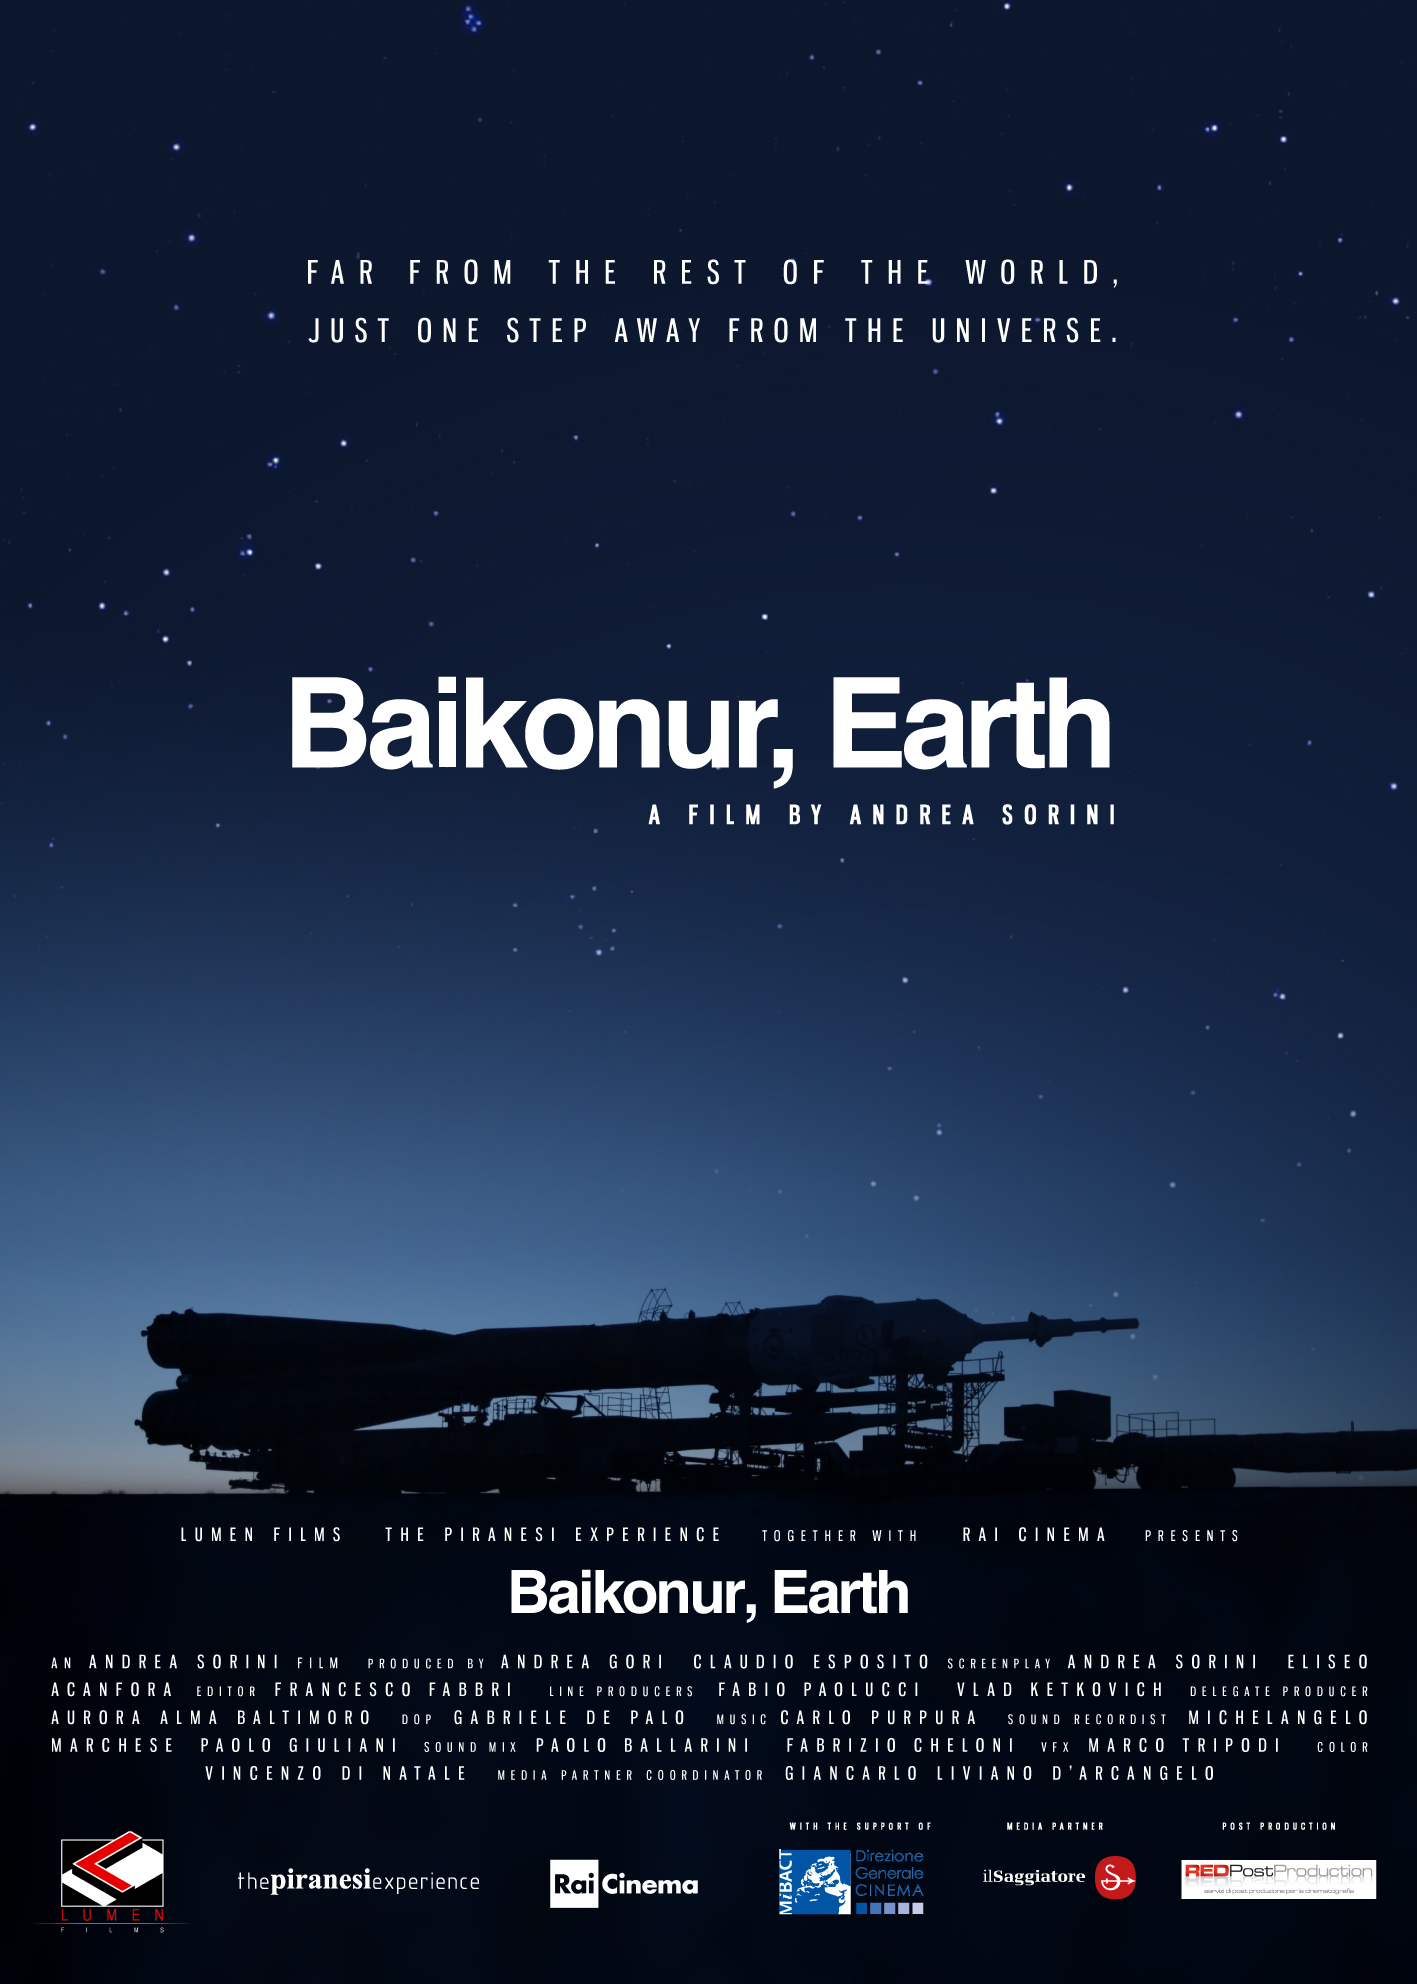 Baikonur Earth poster